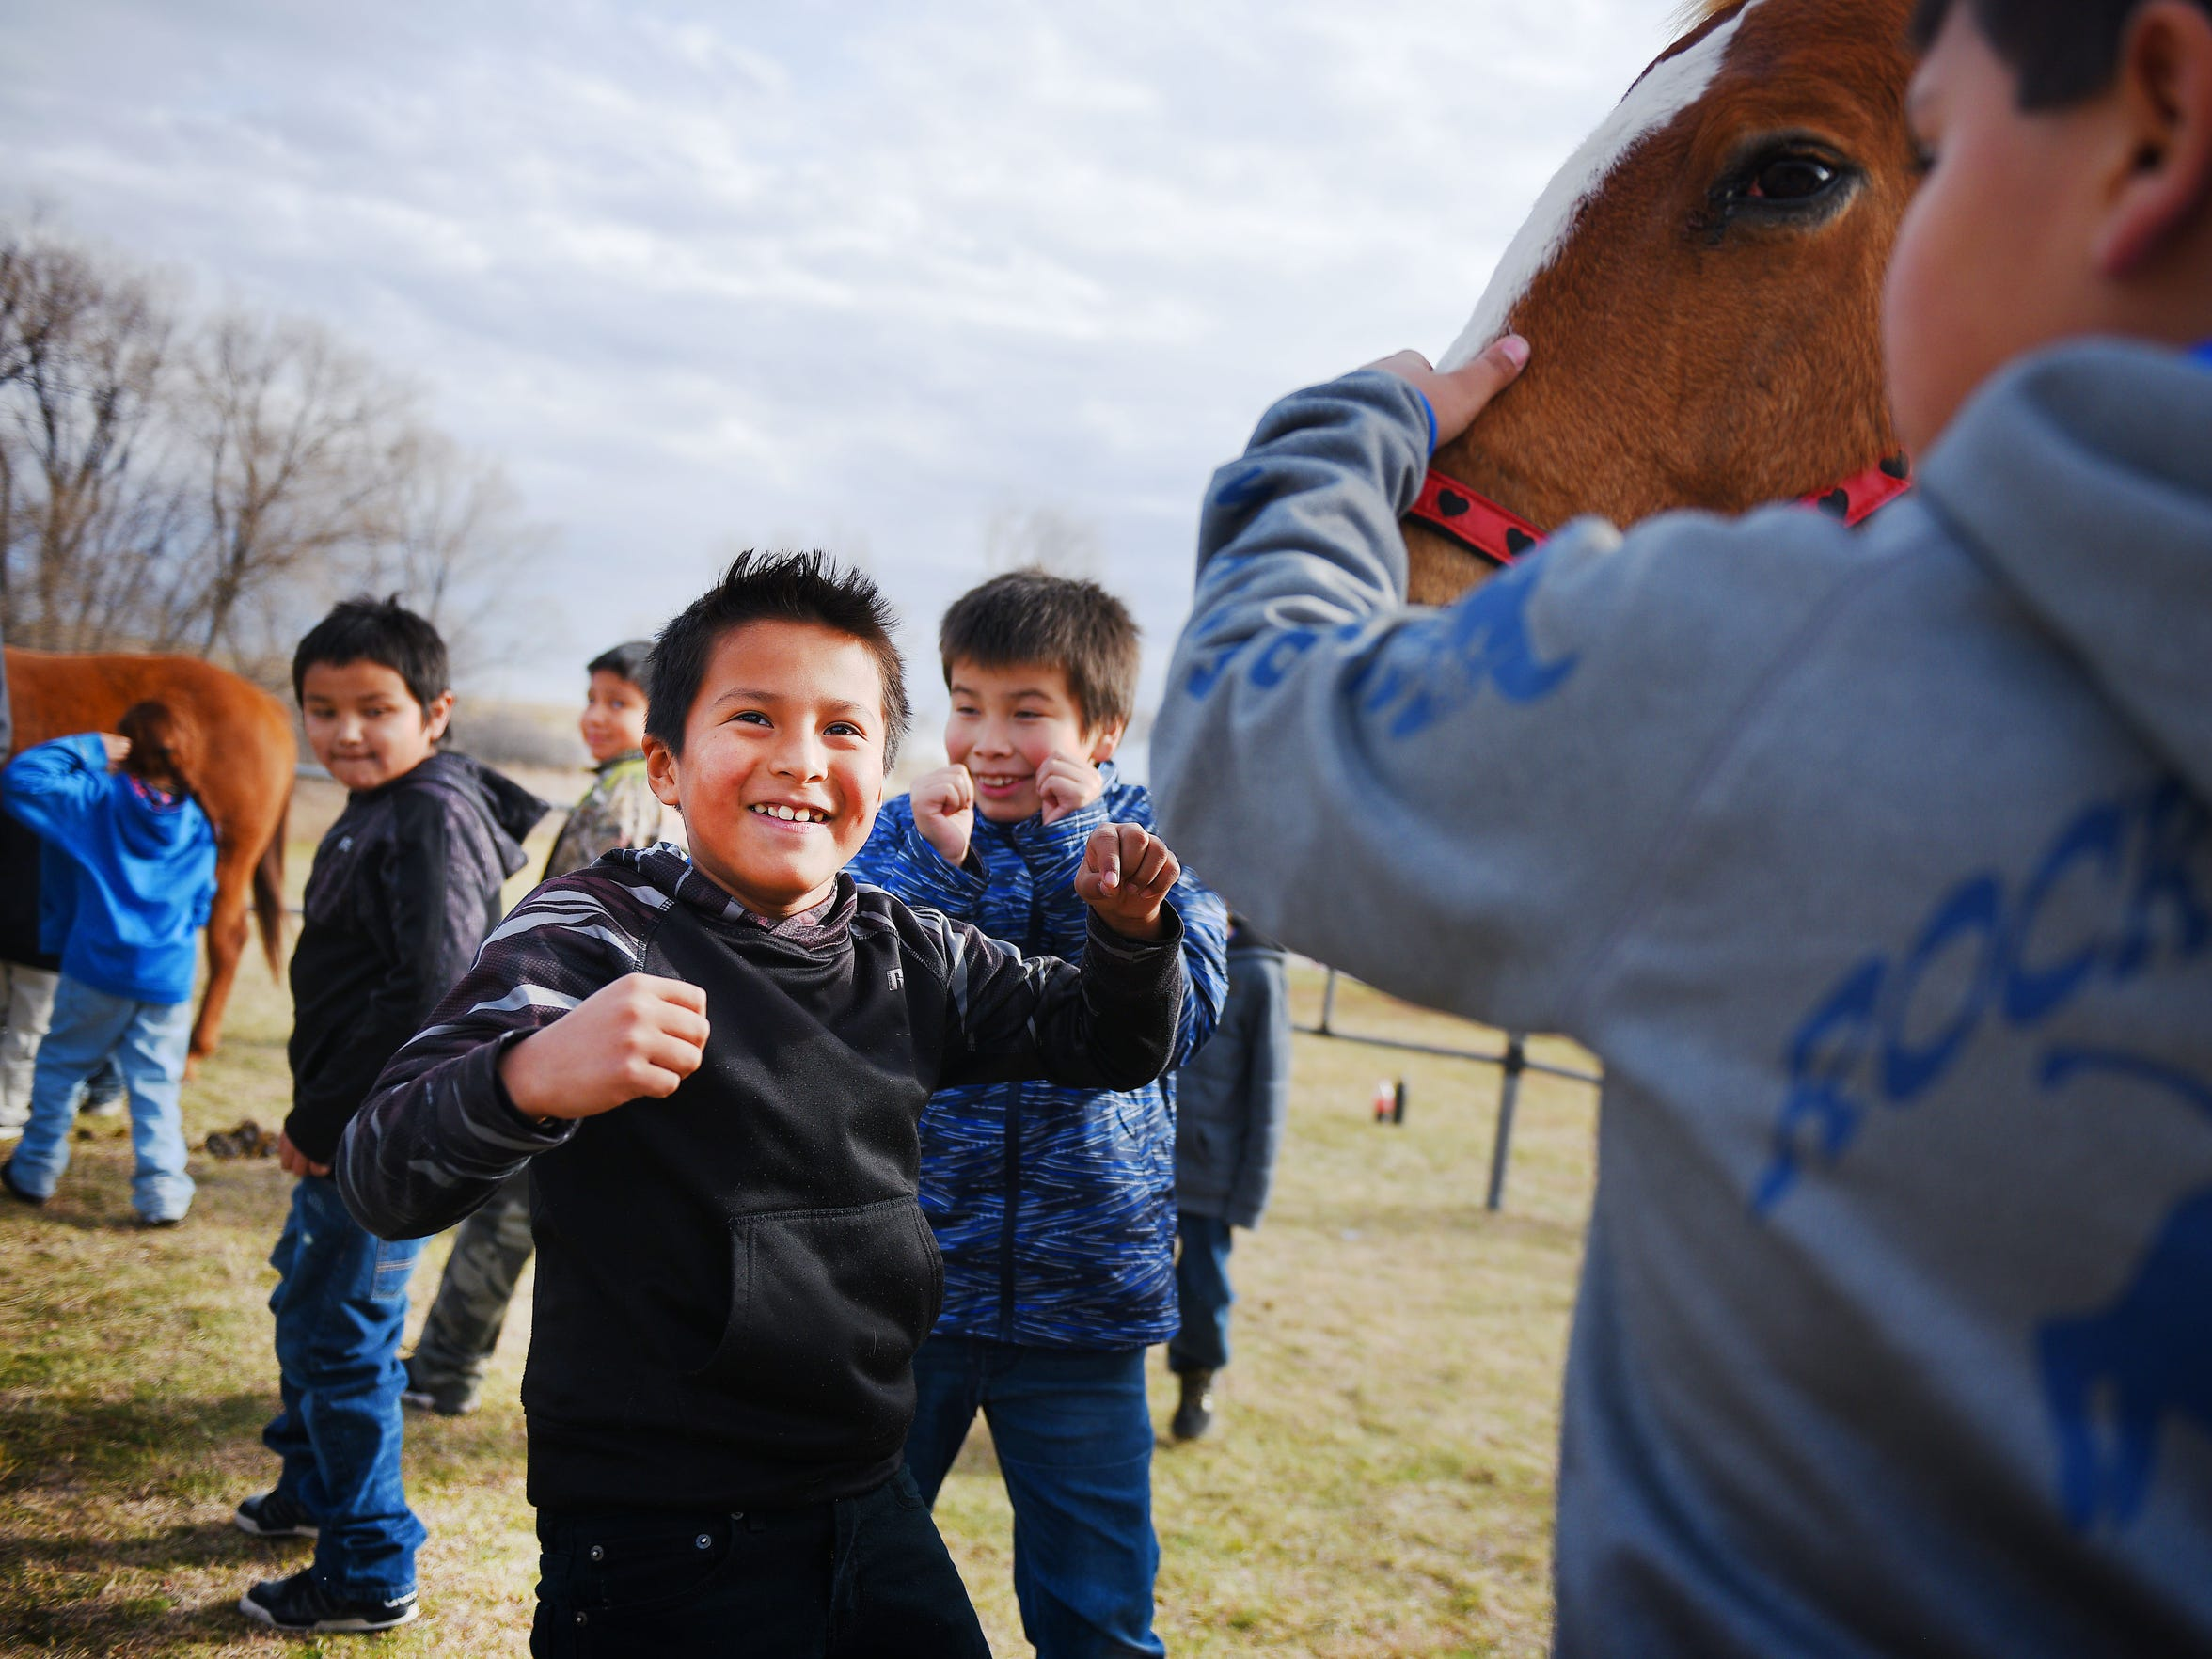 Tokahe runs toward the horse during animal therapy at He Dog Elementary School Tuesday, Nov. 14, in Todd County, South Dakota.